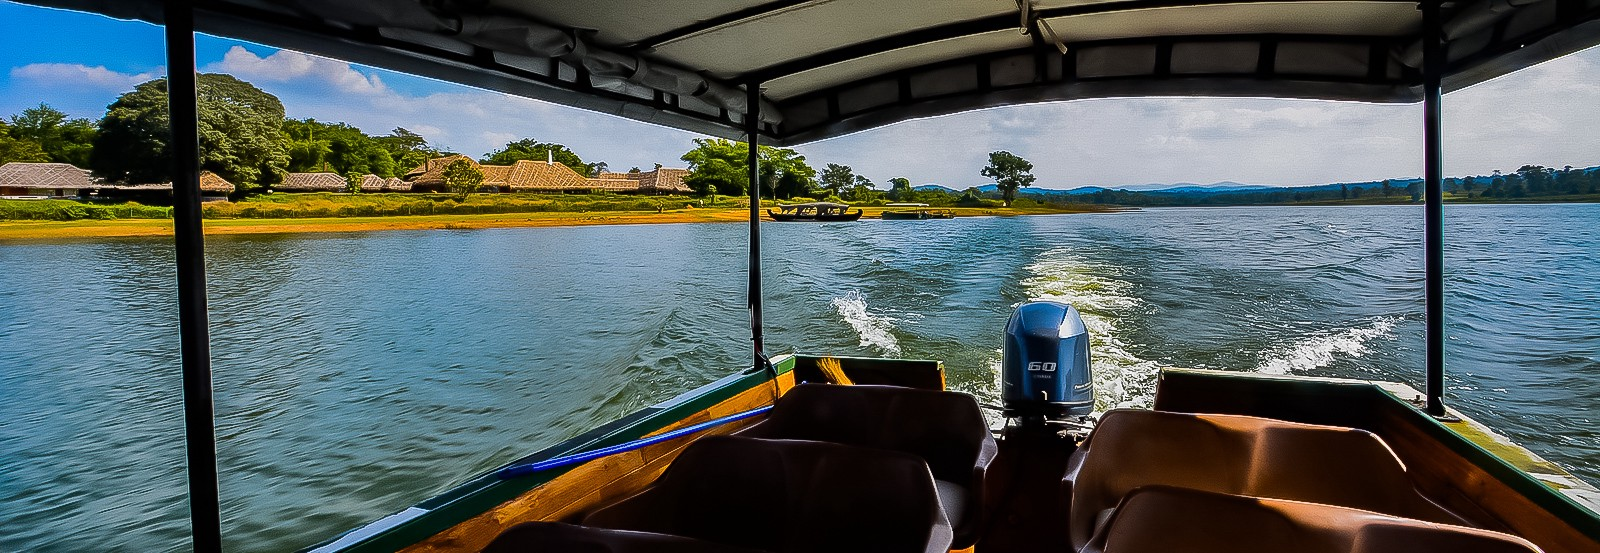 Kabini: Wilderness on the Waters - Future Travel